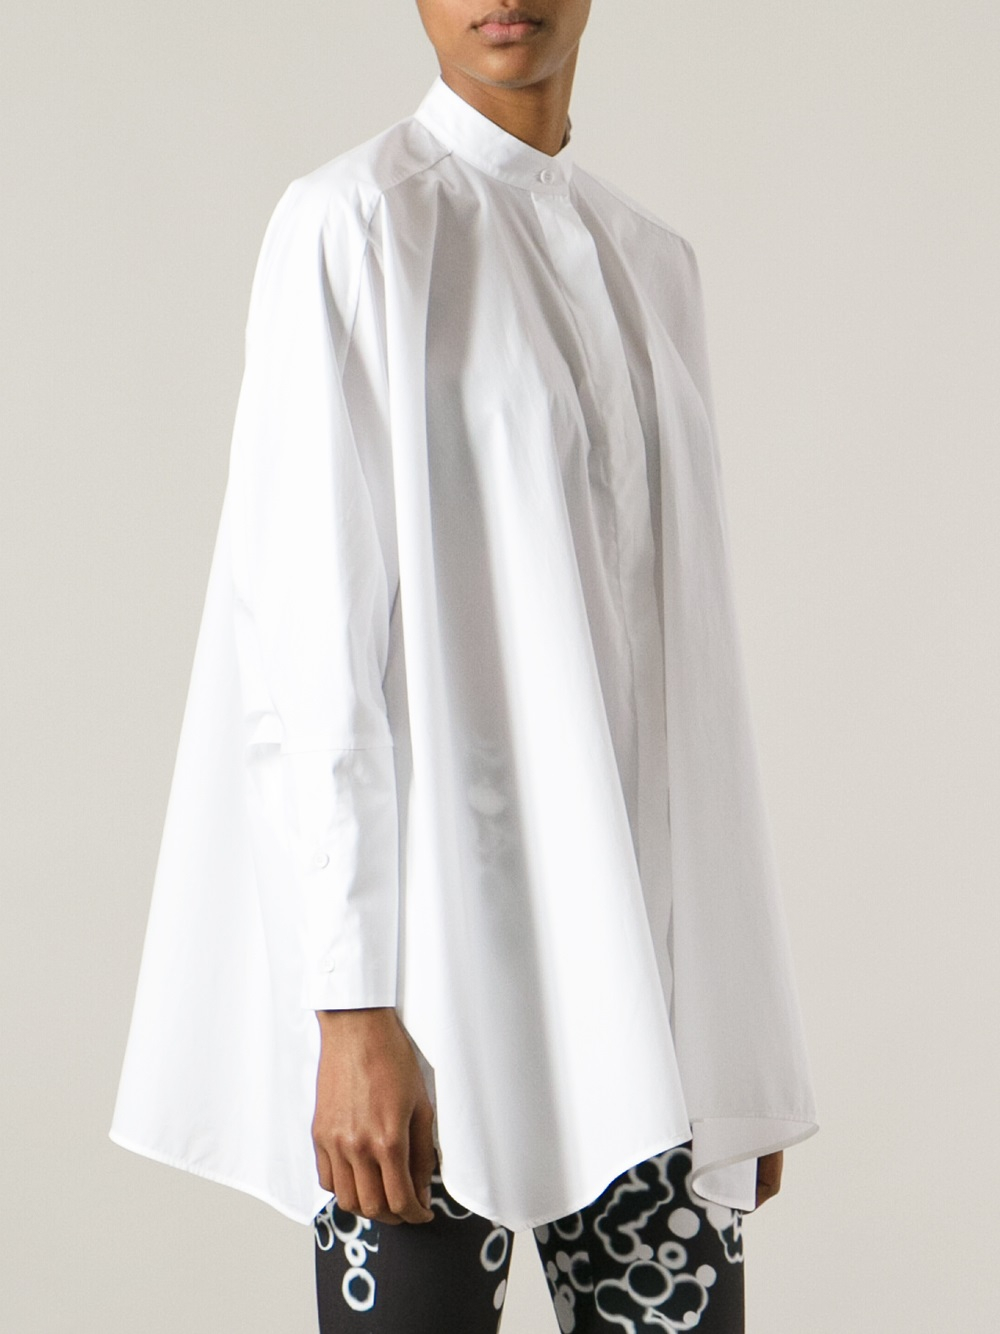 mm6 by maison martin margiela oversize mandarin collar shirt in white lyst. Black Bedroom Furniture Sets. Home Design Ideas